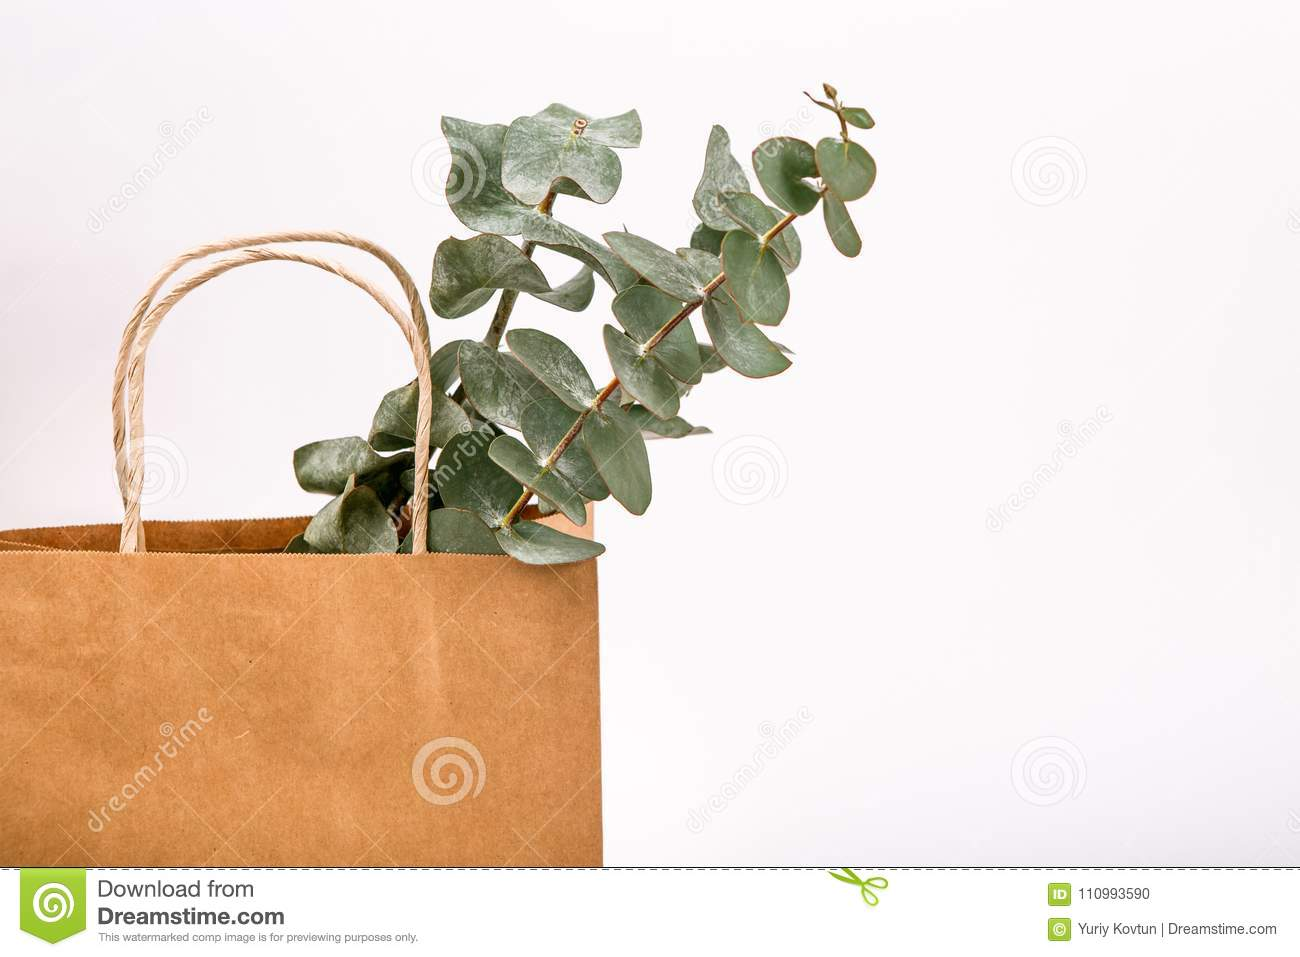 Kraft brown paper shopping bag white background Spring concept